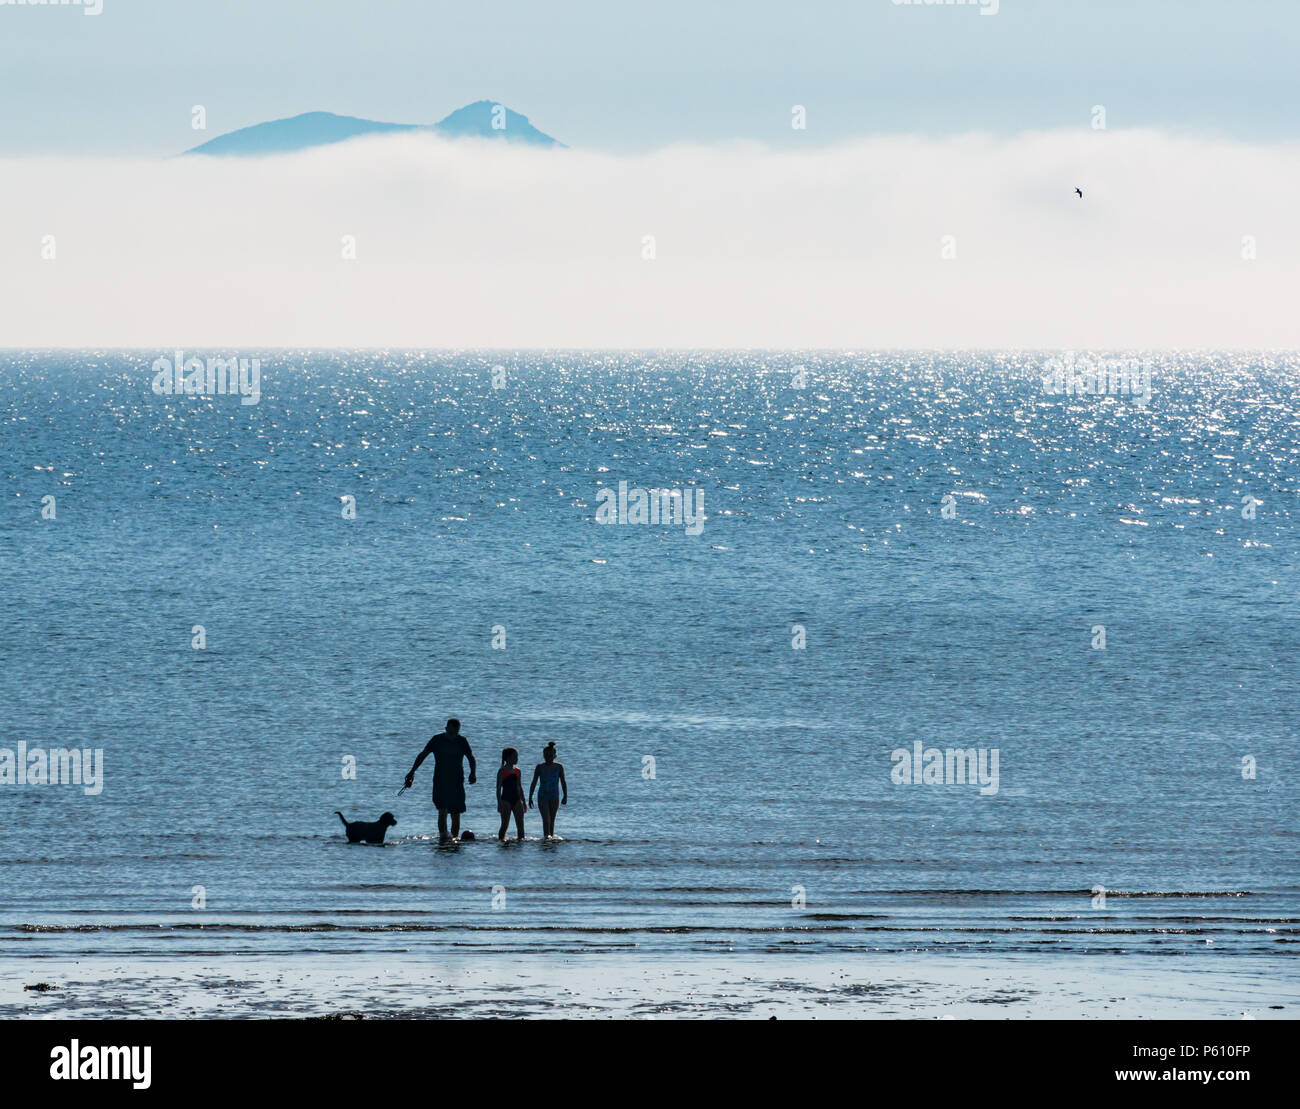 east-lothian-scotland-united-kingdom-27th-june-2018-uk-weather-sea-fog-or-haar-in-the-firth-of-forth-coast-created-a-haze-a-family-enjoys-an-evening-dip-to-cool-down-in-the-sea-with-the-distinctive-outline-of-arthurs-seat-in-edinburgh-just-visible-through-the-fog-P610FP.jpg